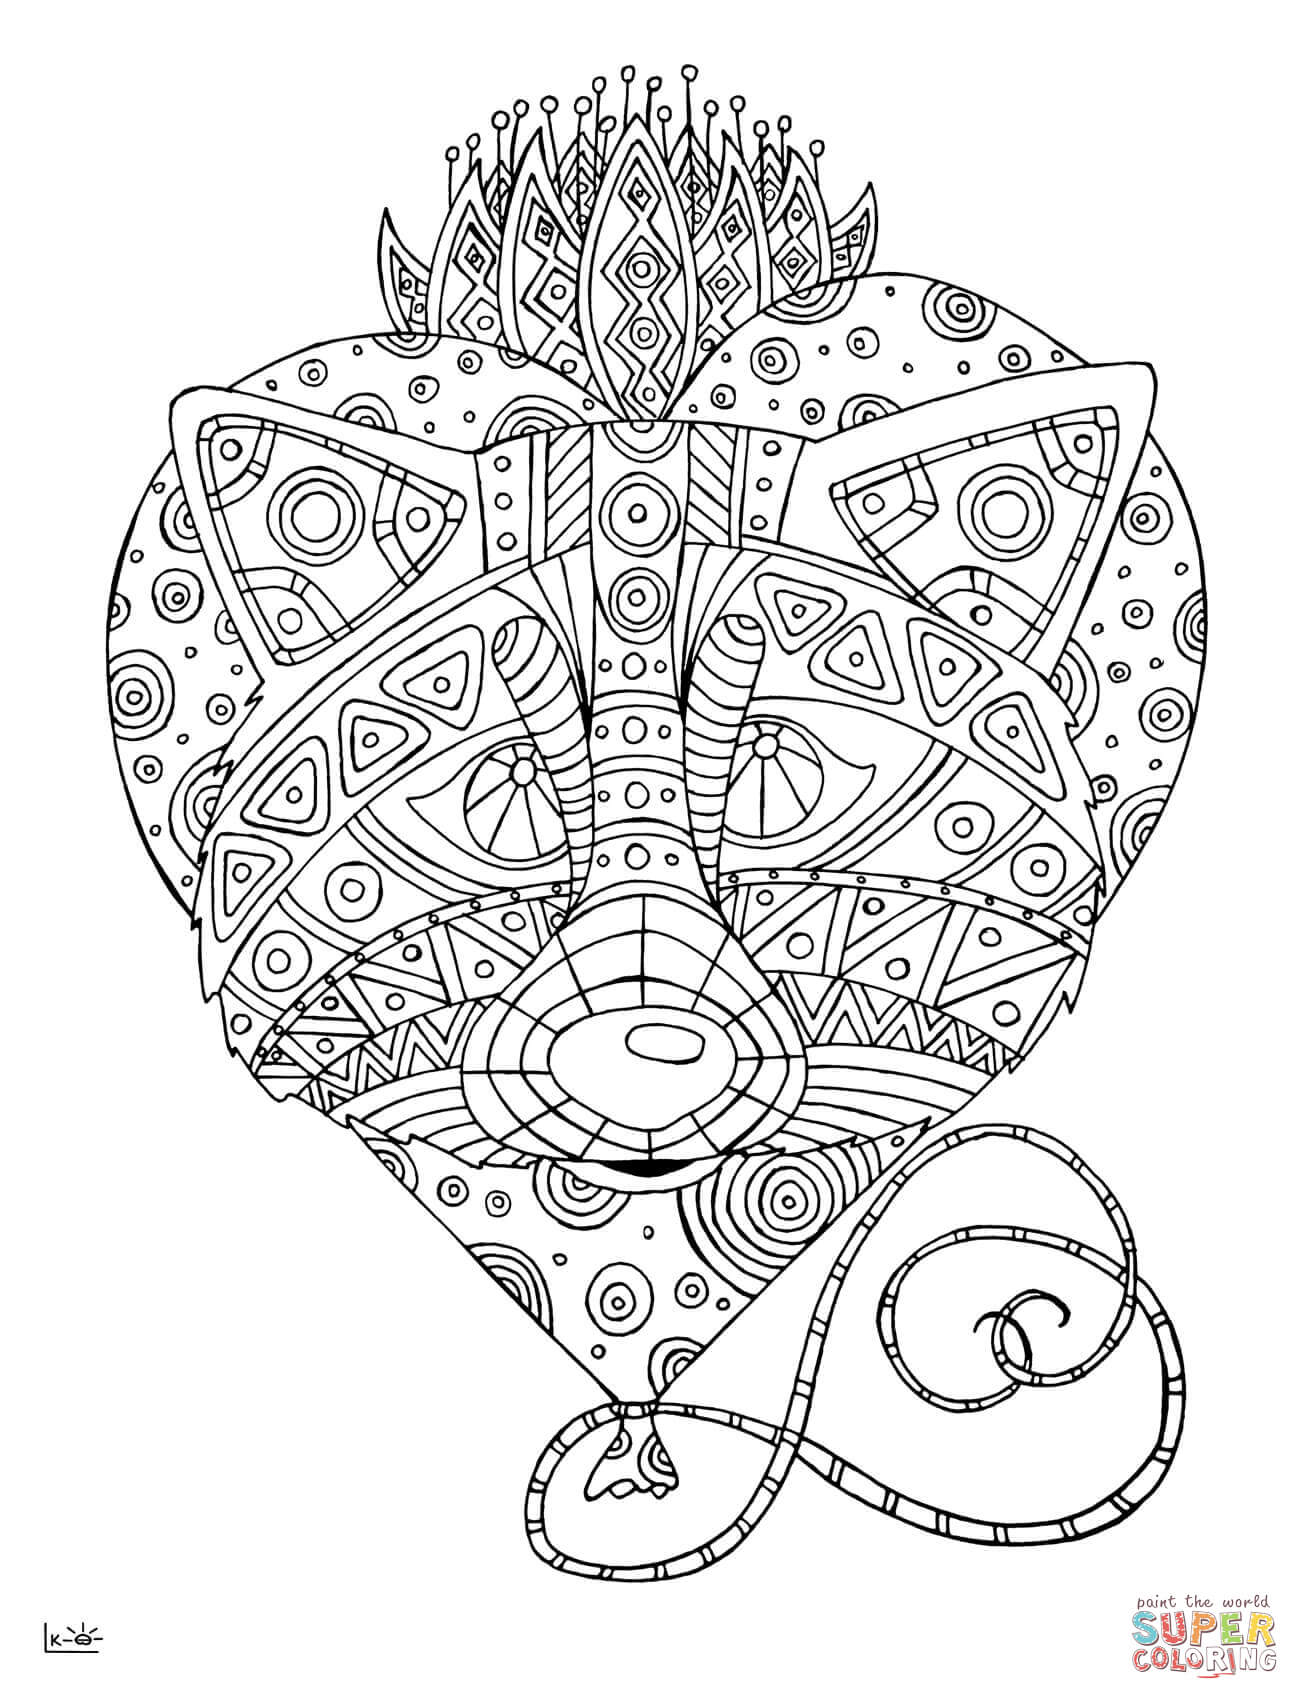 Raccoon With Tribal Pattern Coloring Page